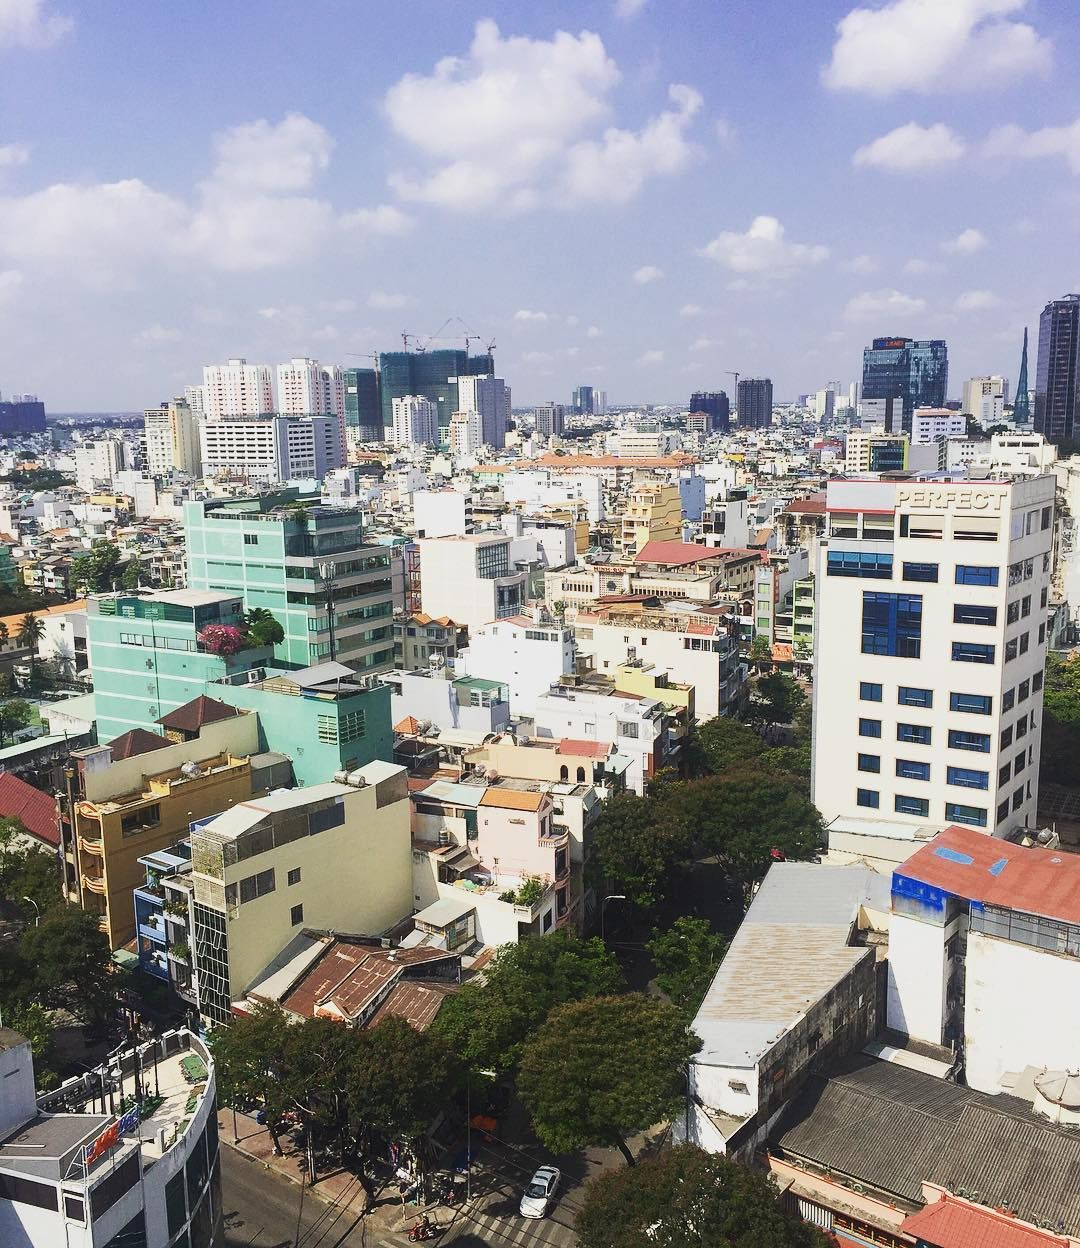 Until Next Time Ho Chi Minh City Now On To Guangzhou Indaba Indabatradingco Vietnam China Sourcing P In 2020 Ho Chi Minh City Travel San Francisco Skyline